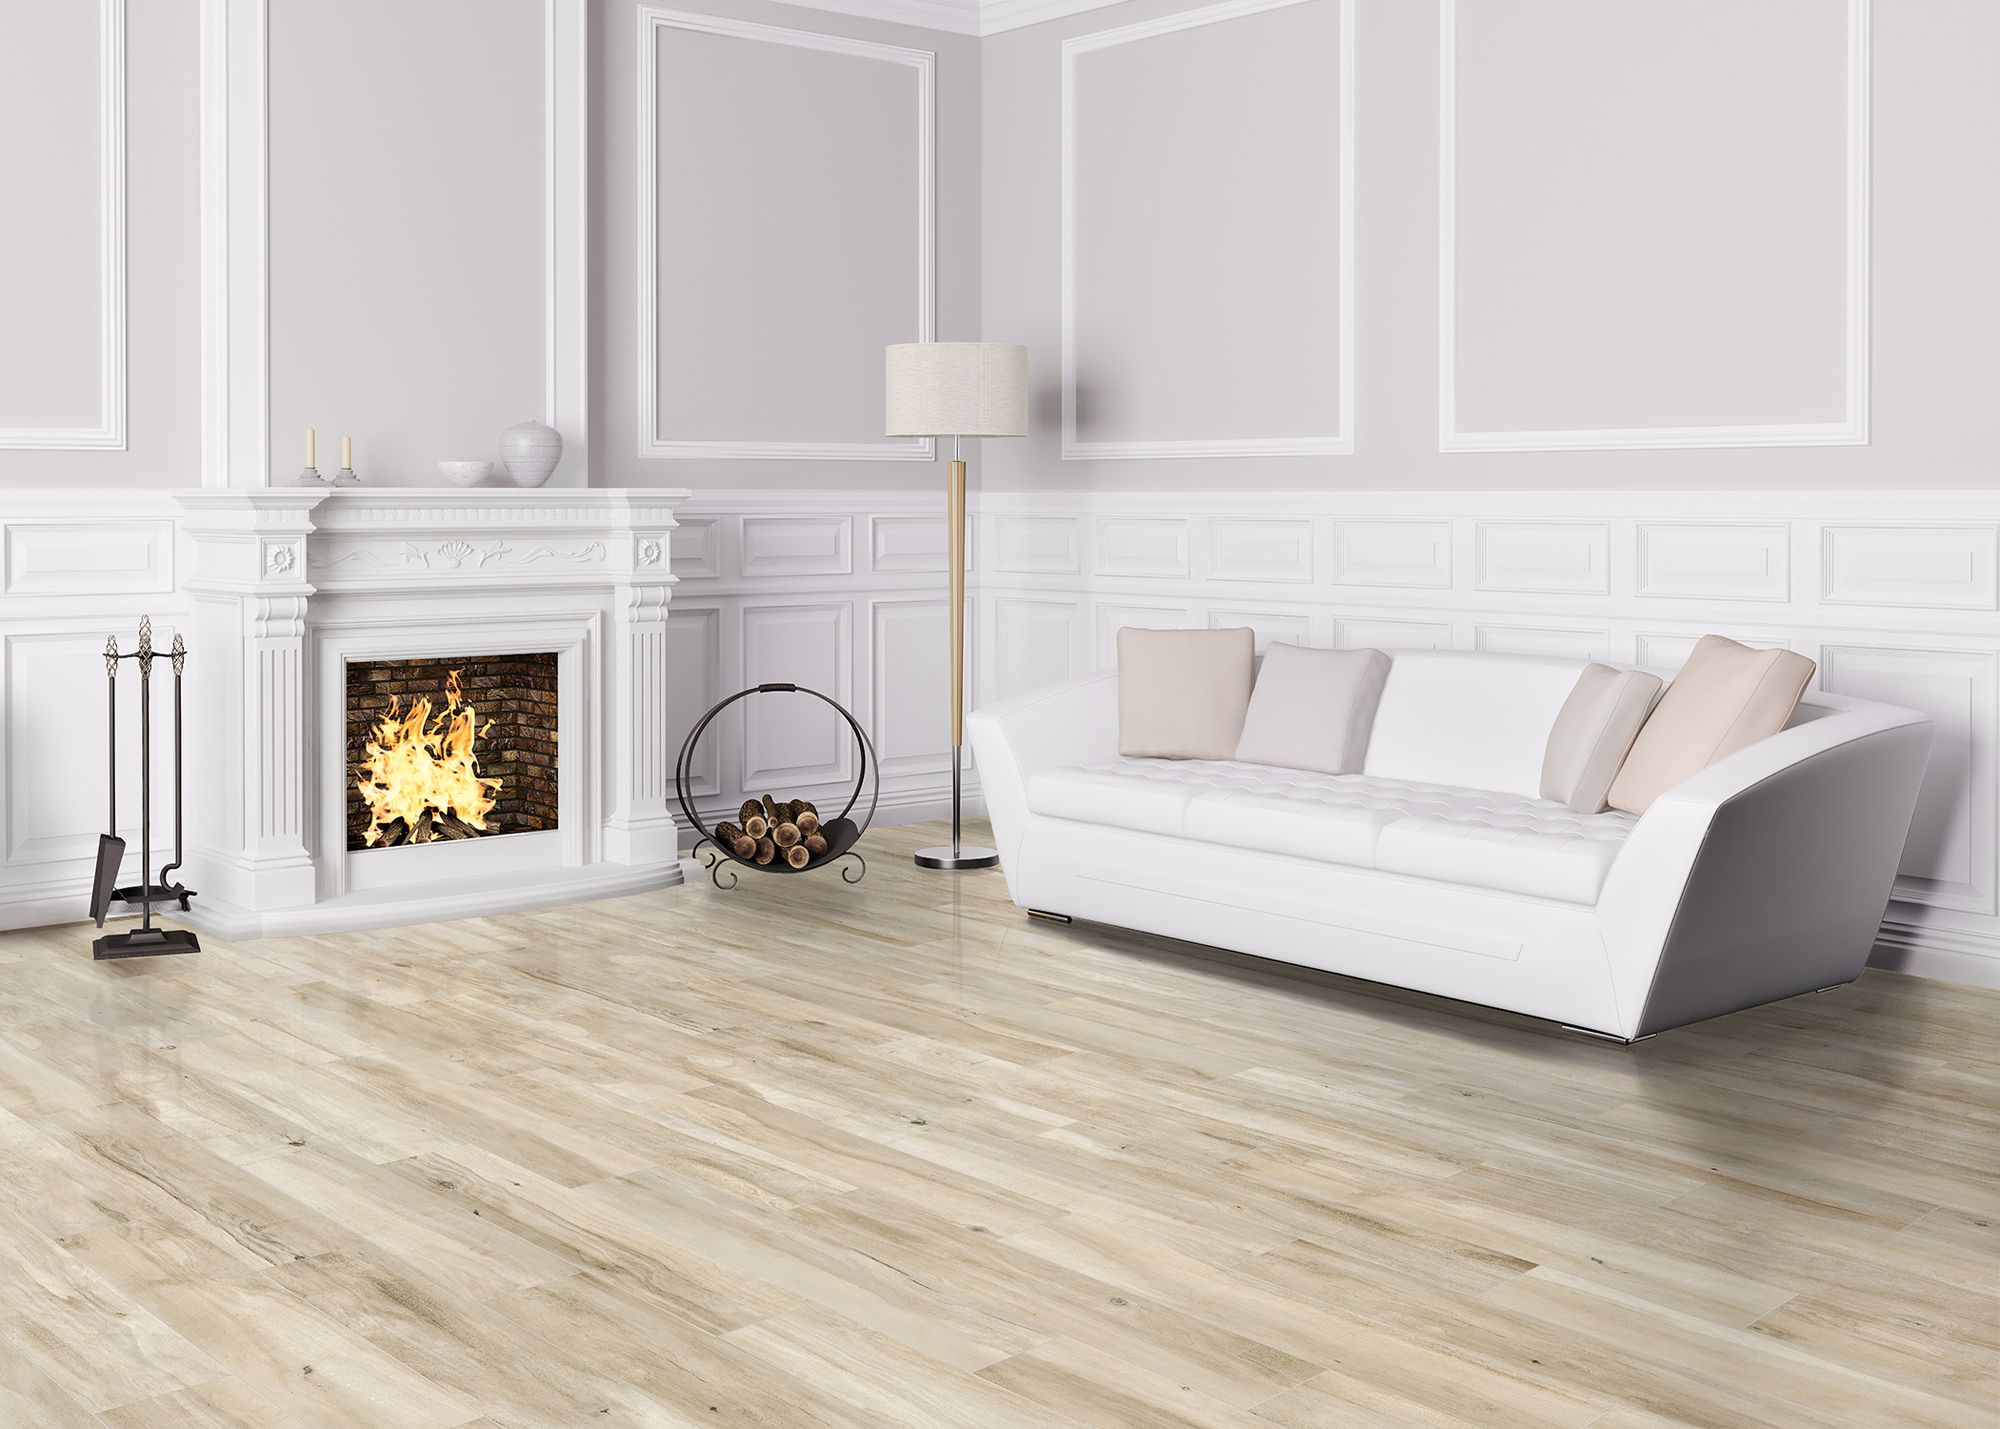 Sandy maple wood look porcelain tile floors wood look tile pinterest porcelain tile Ceramic tile store